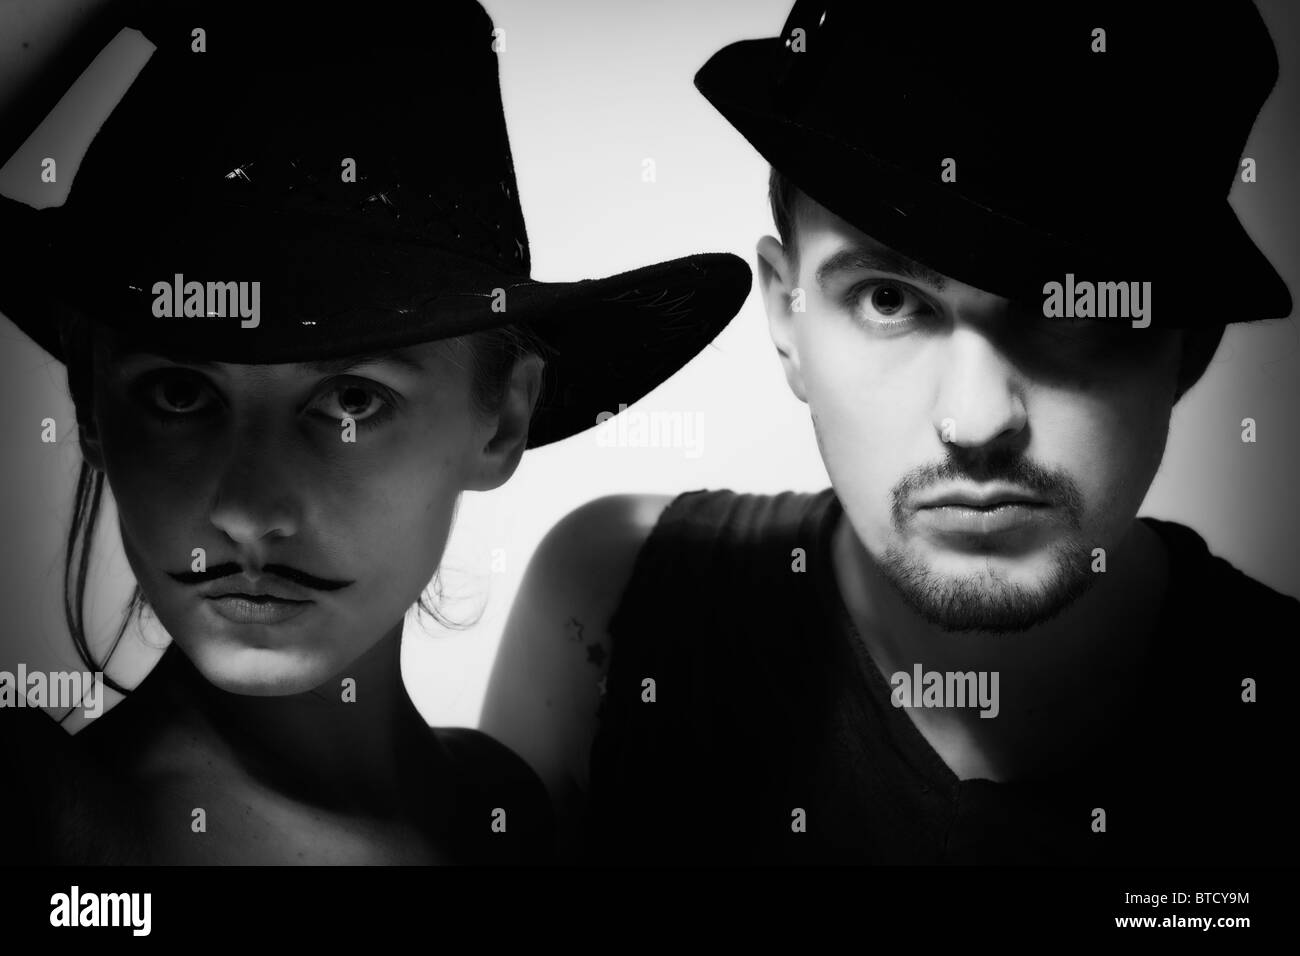 portrait of young man and woman with mustache wearing hats - Stock Image